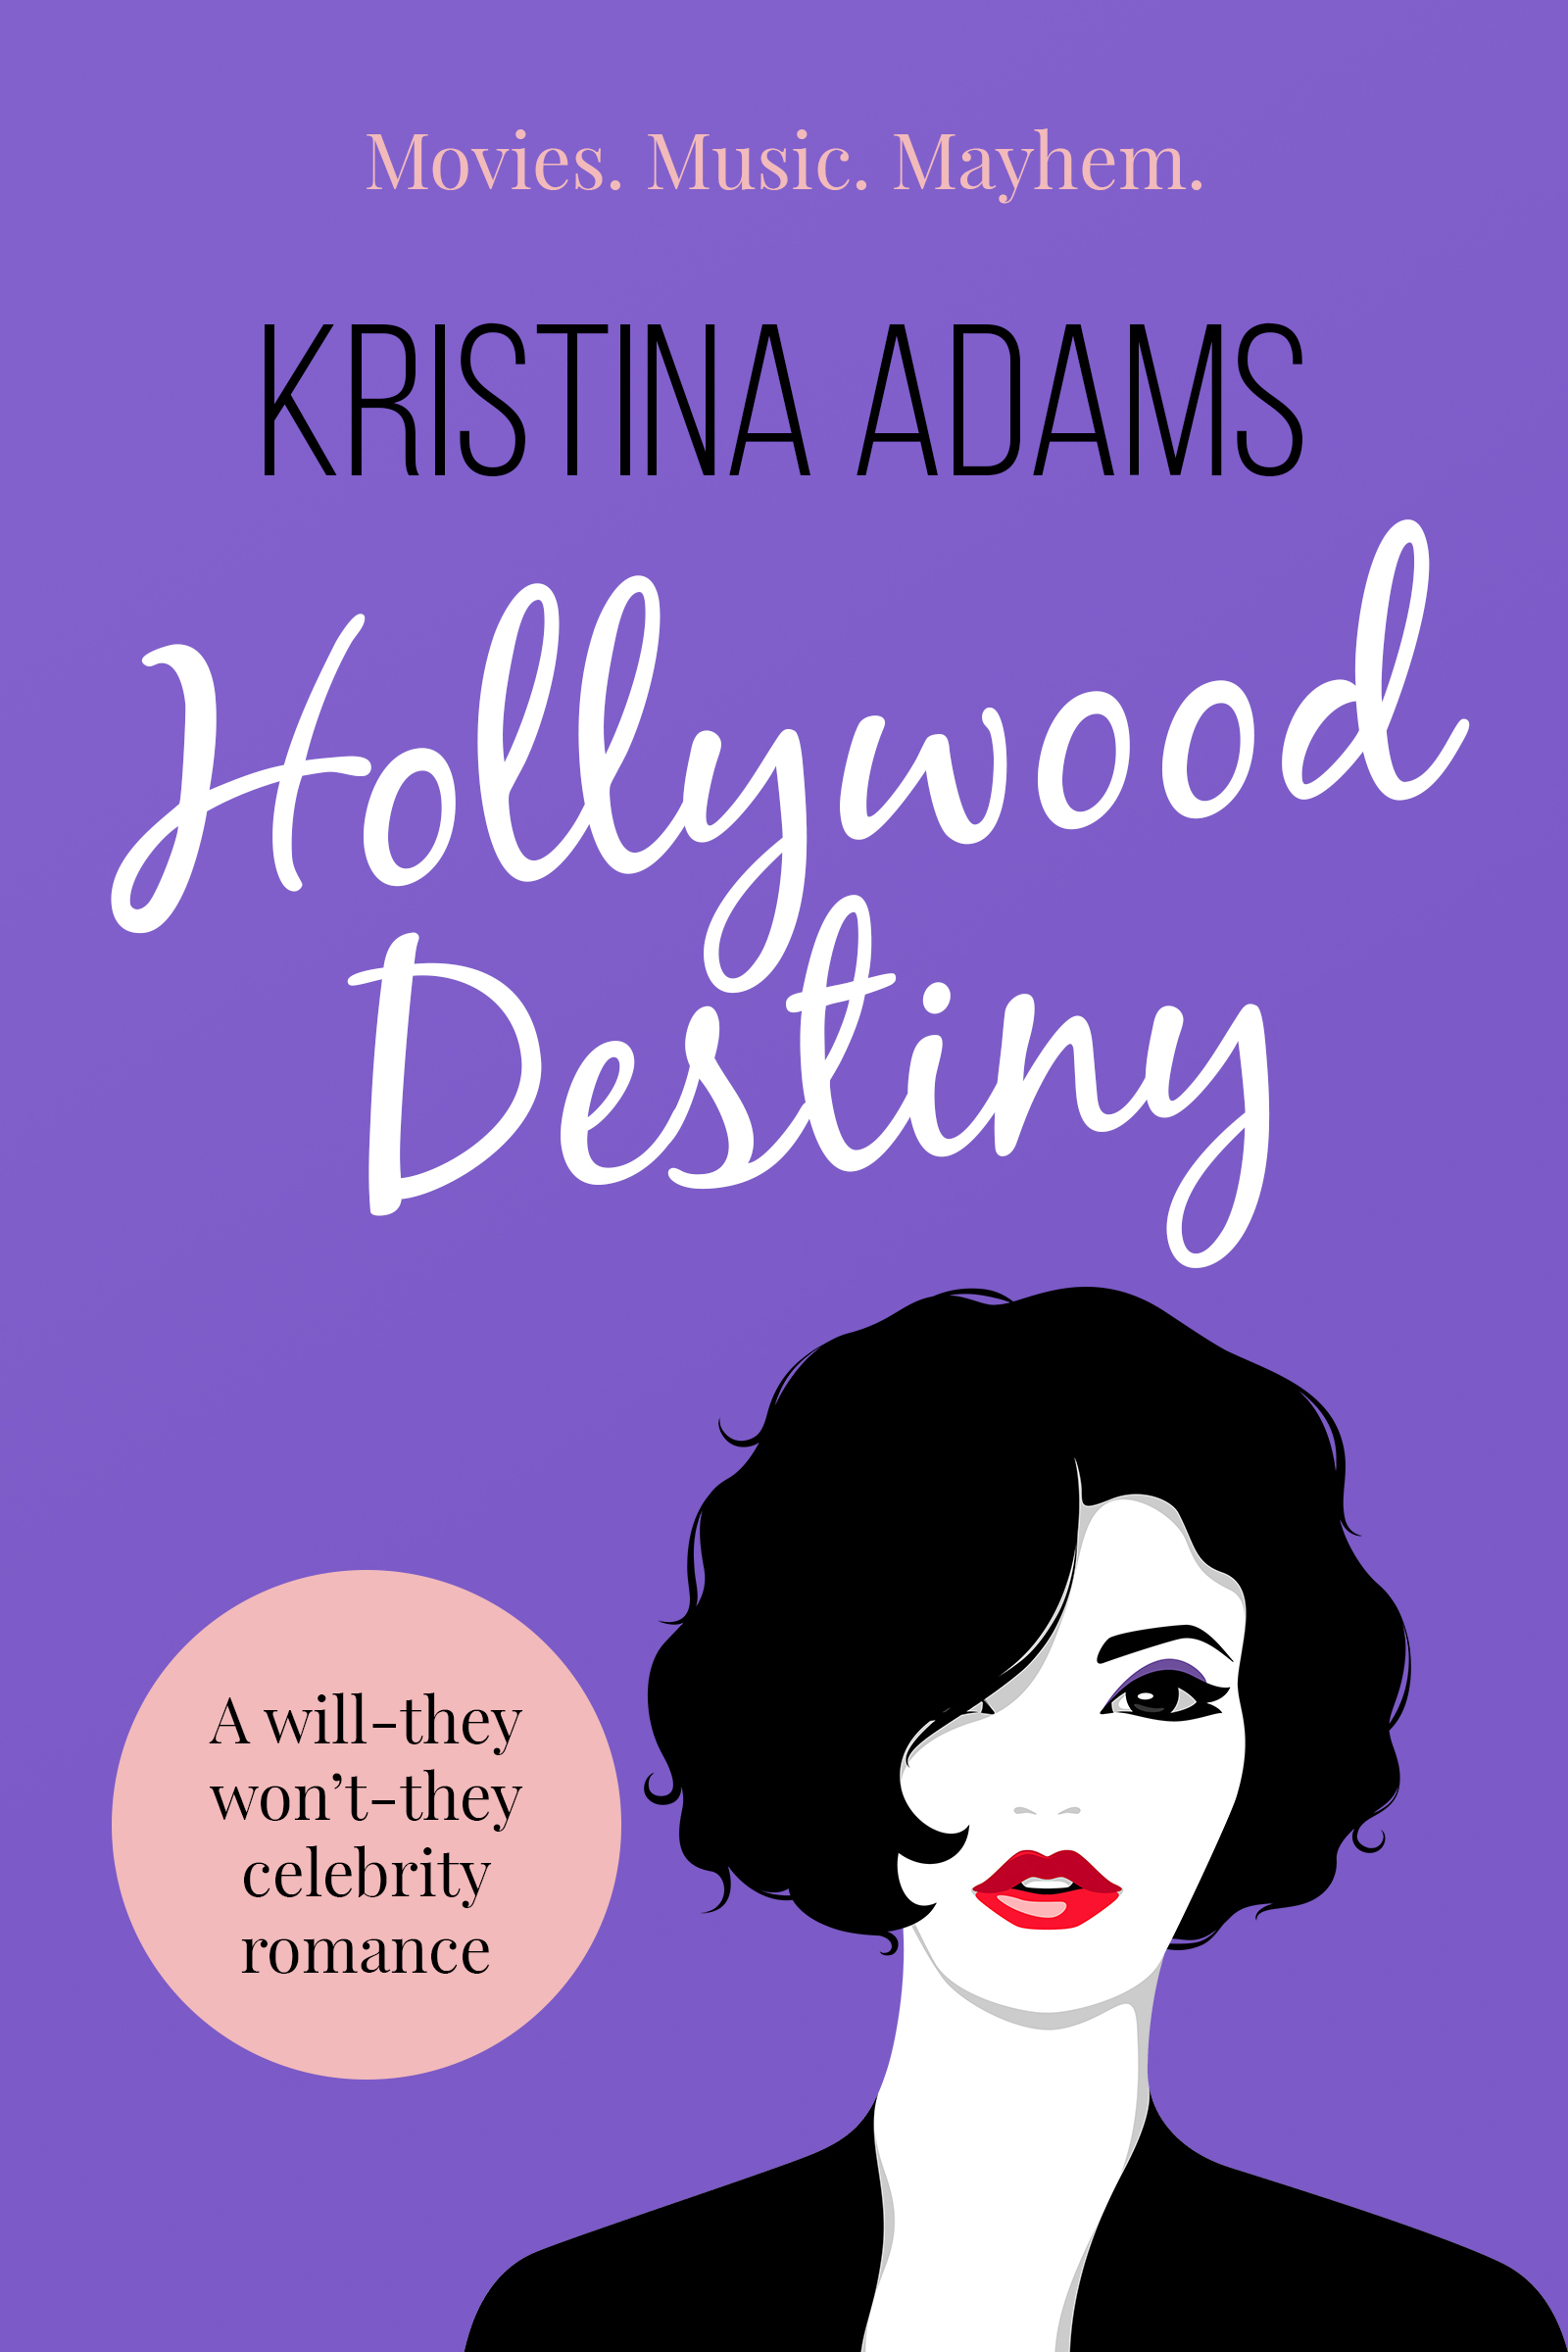 Hollywood Destiny Kristina Adams book cover